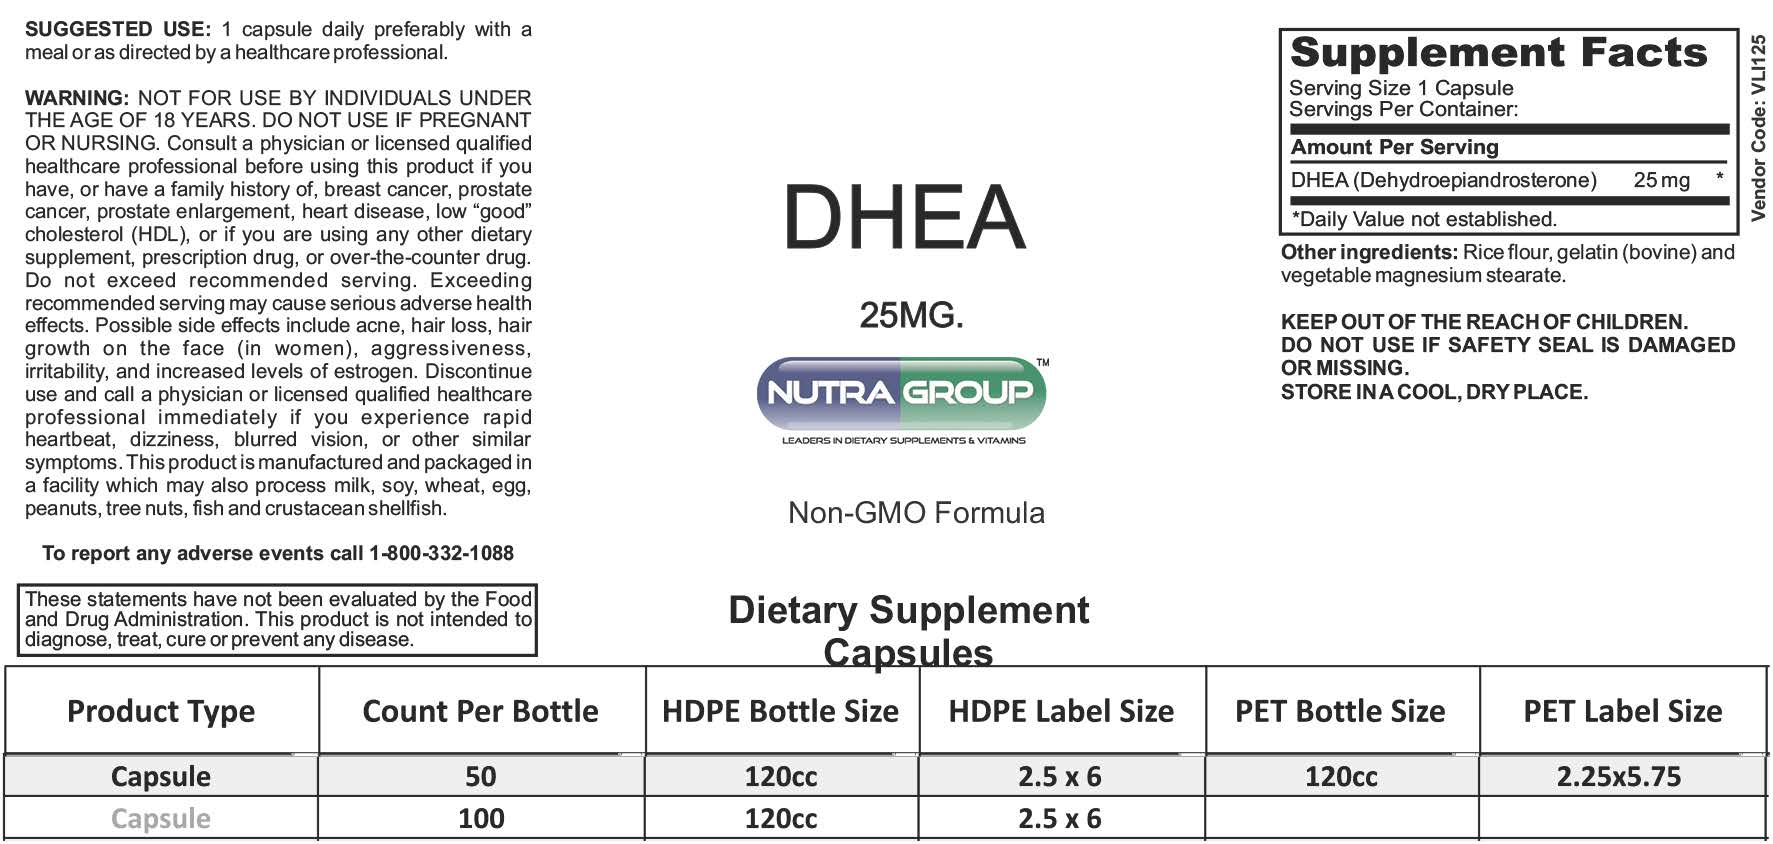 Private label DHEA supplement